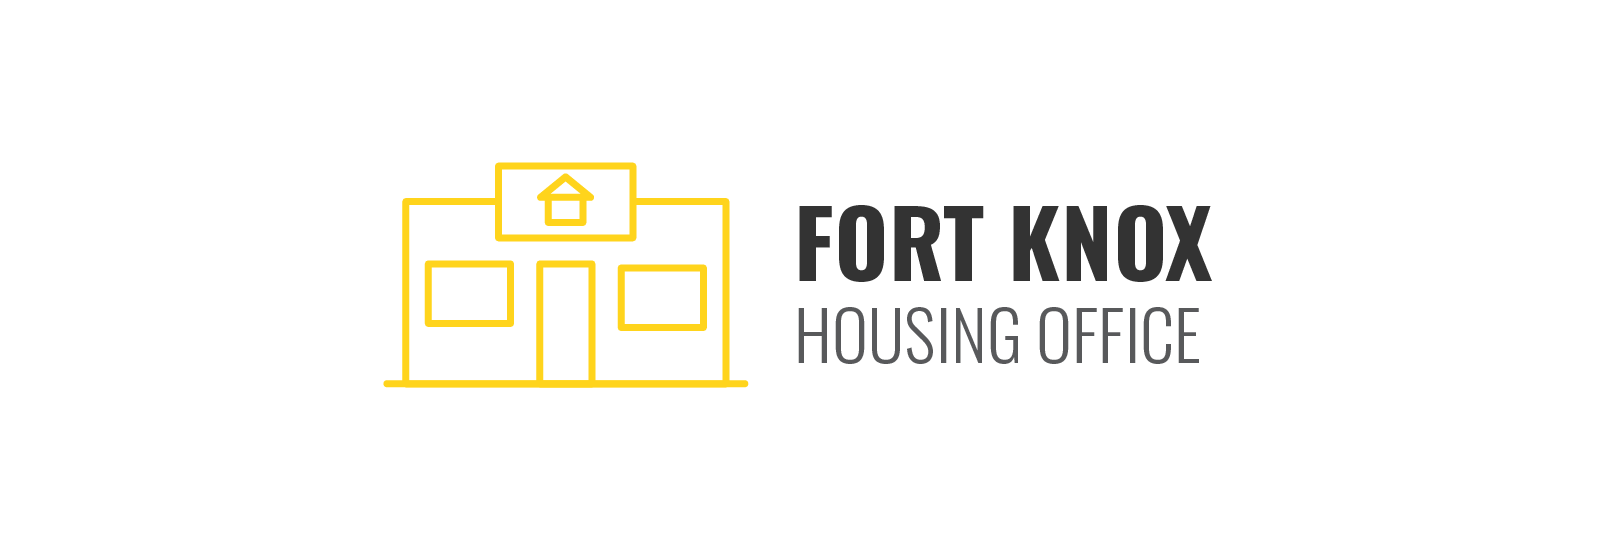 Fort Knox Housing Office